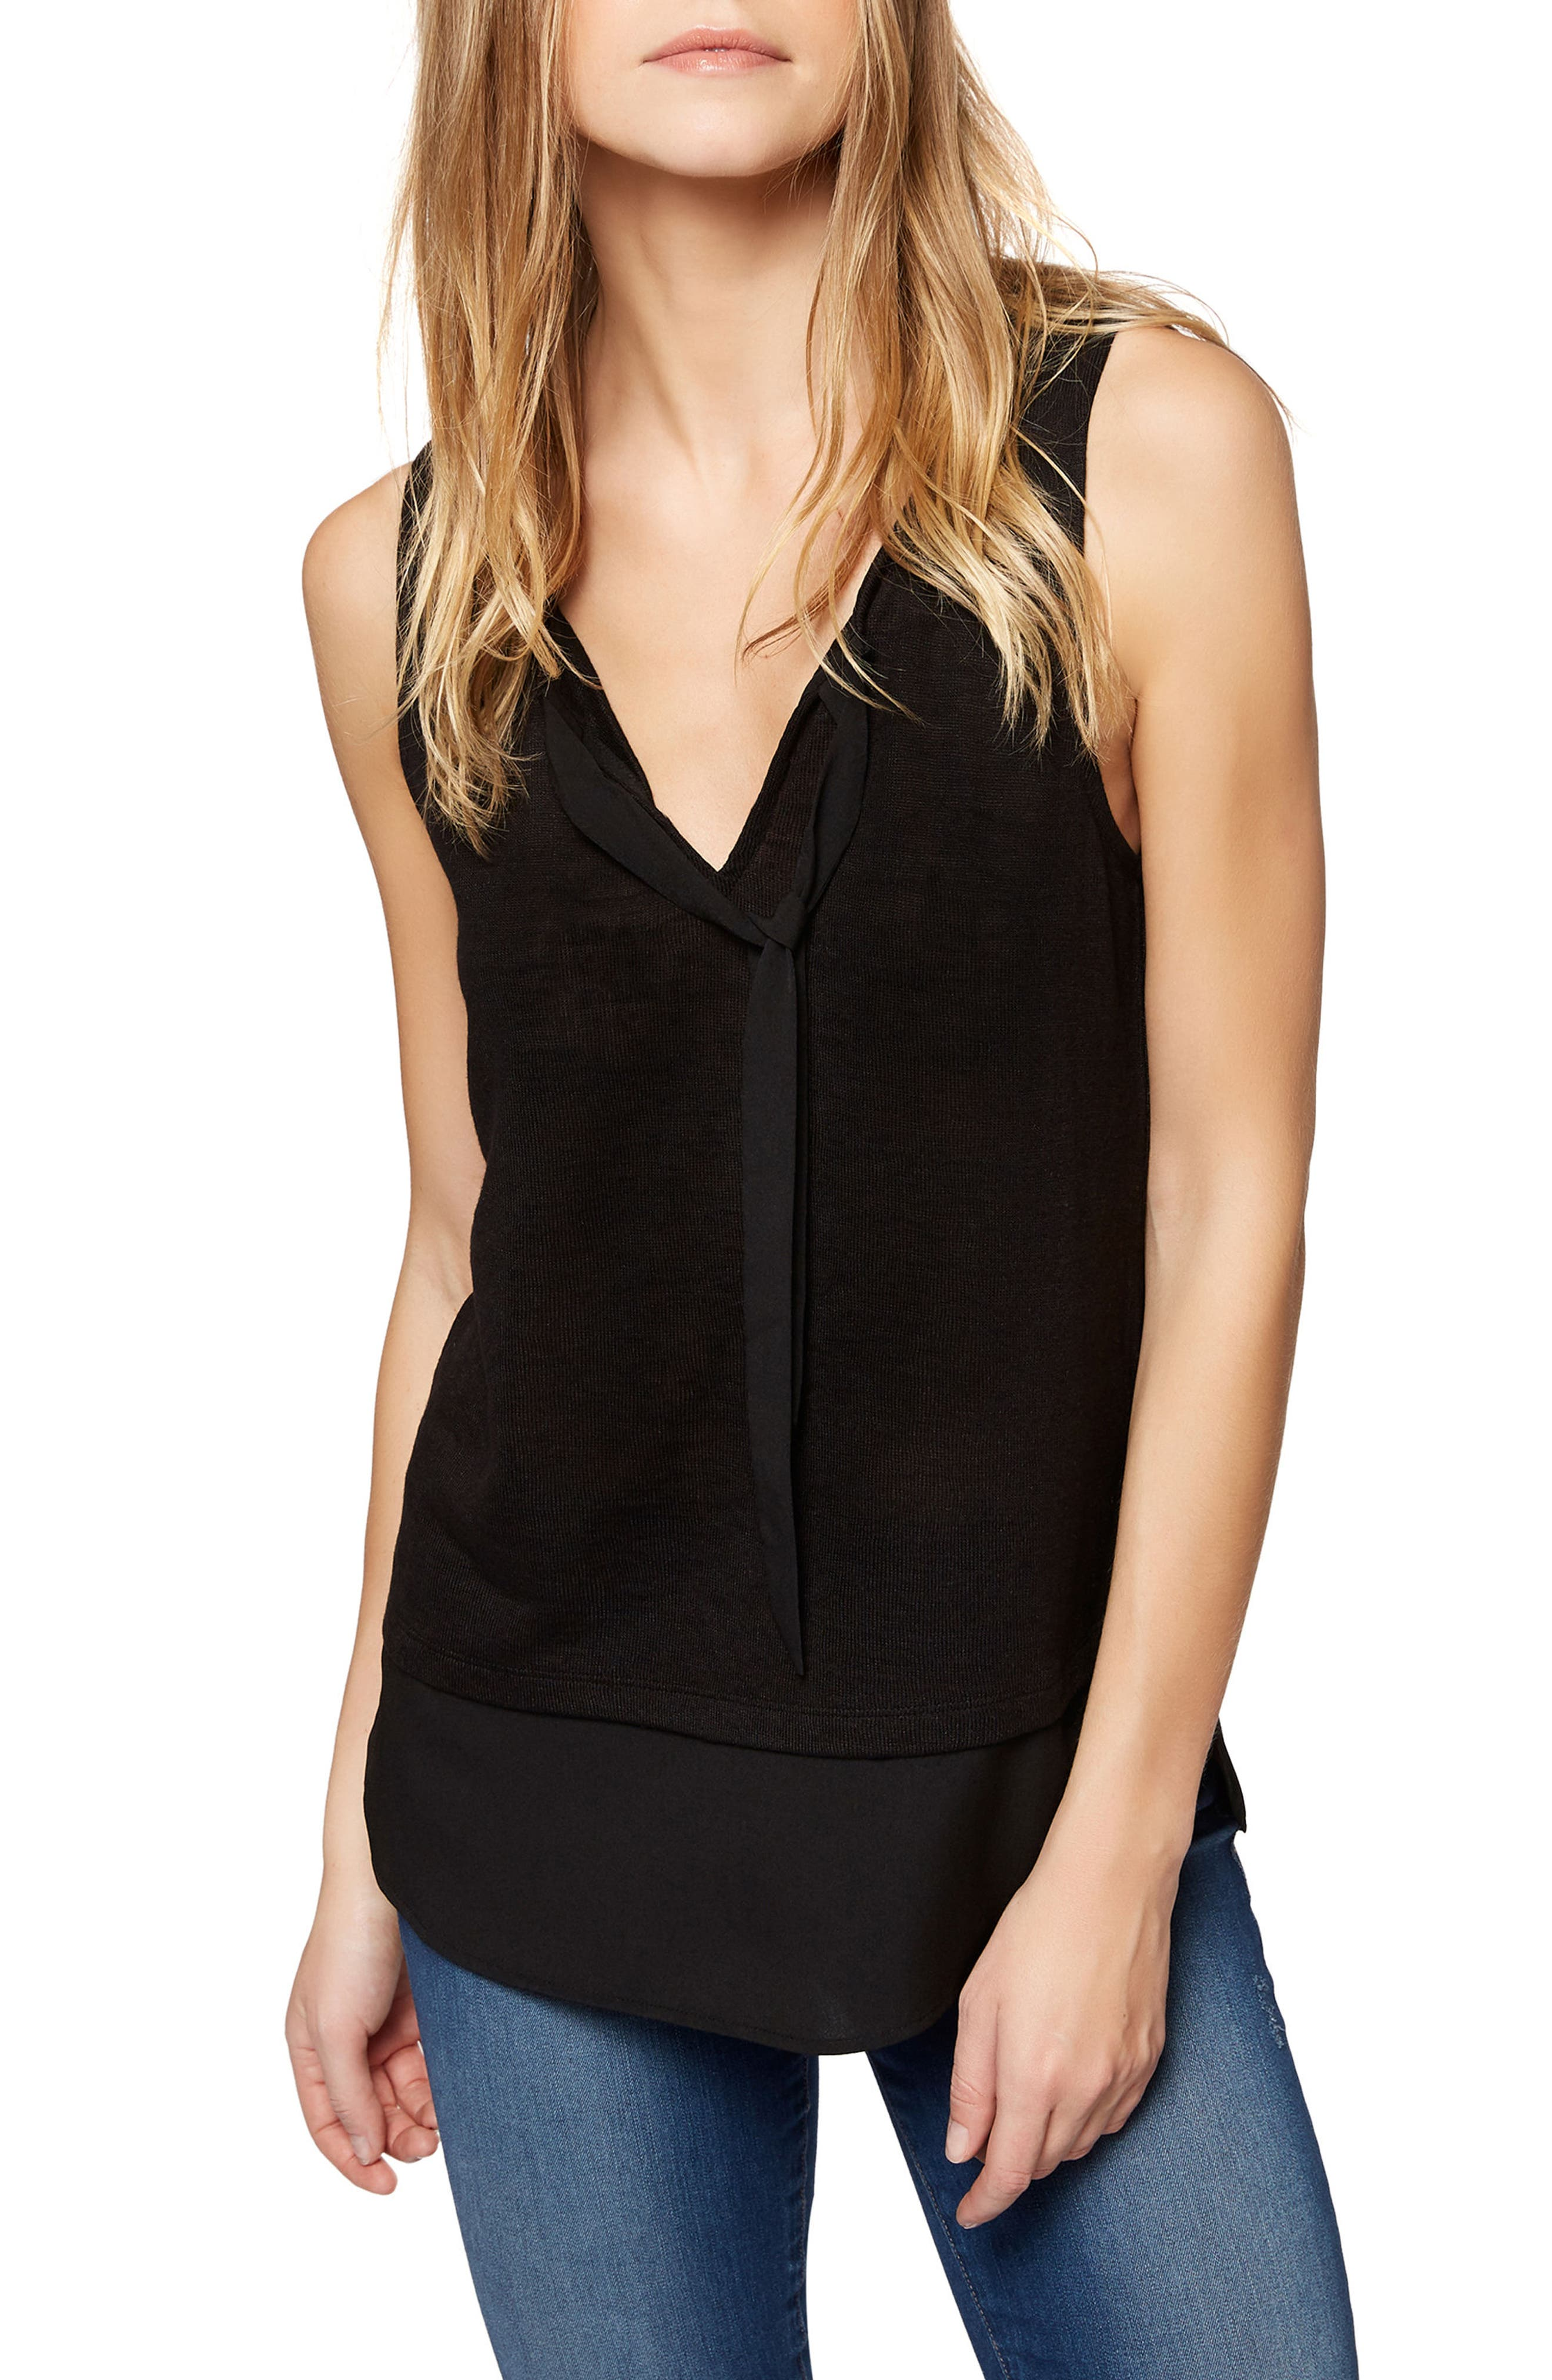 Main Image - Sanctuary Emma Tie Neck Top (Regular & Petite)